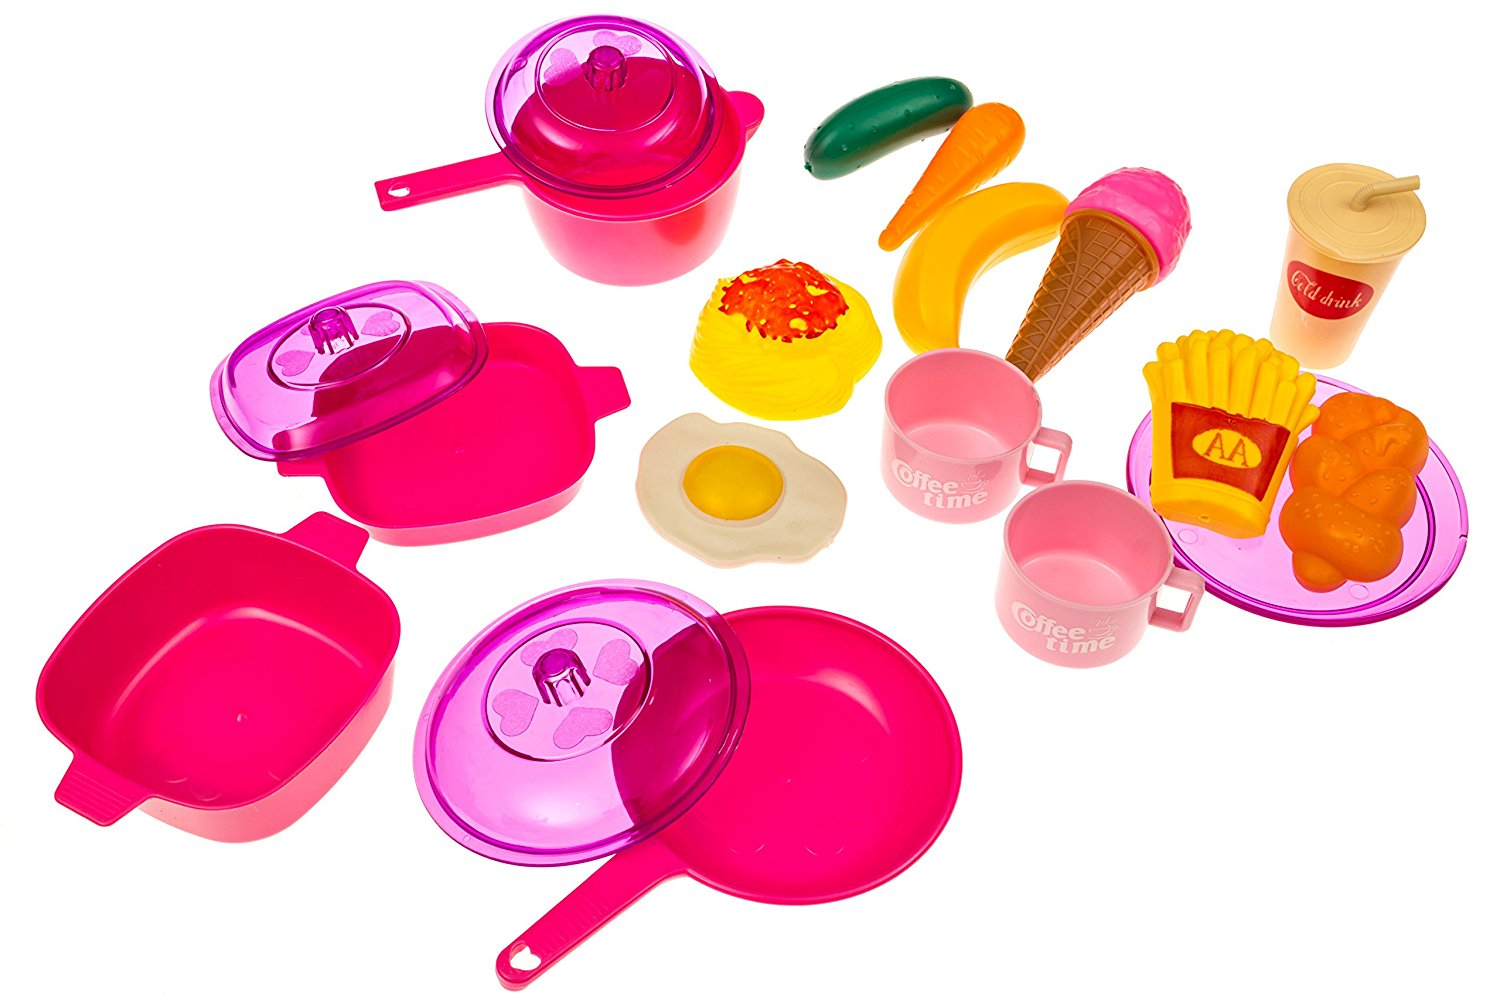 Kids Play Food Dishes Set Toy